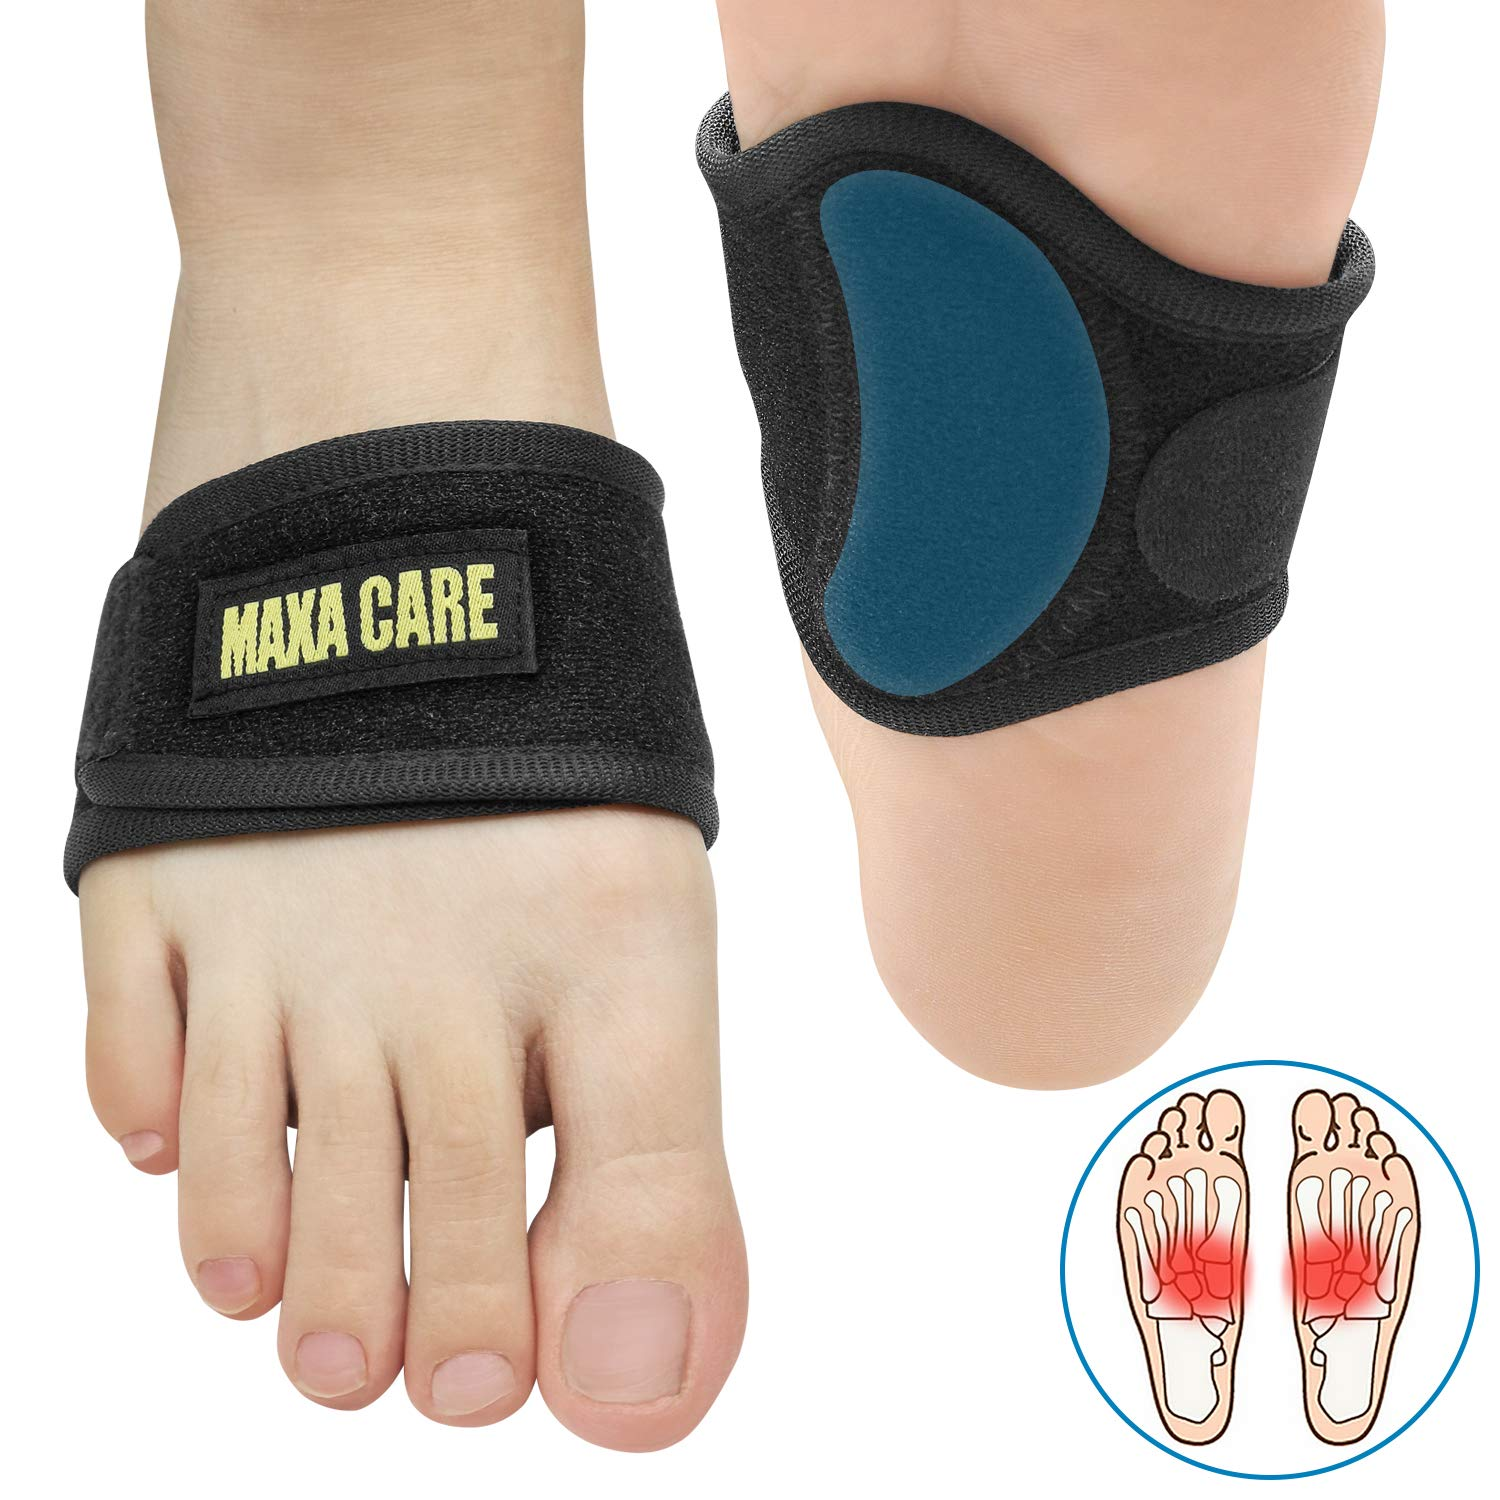 [Thinner for Shoes] MaxaCare Plantar Fasciitis Inserts Arch Support Brace for Pain Relief, High Arch Support Shoe Inserts for Plantar Fasciitis & Flat Feet & Fallen Arch, Fit Men & Women by MaxaCare